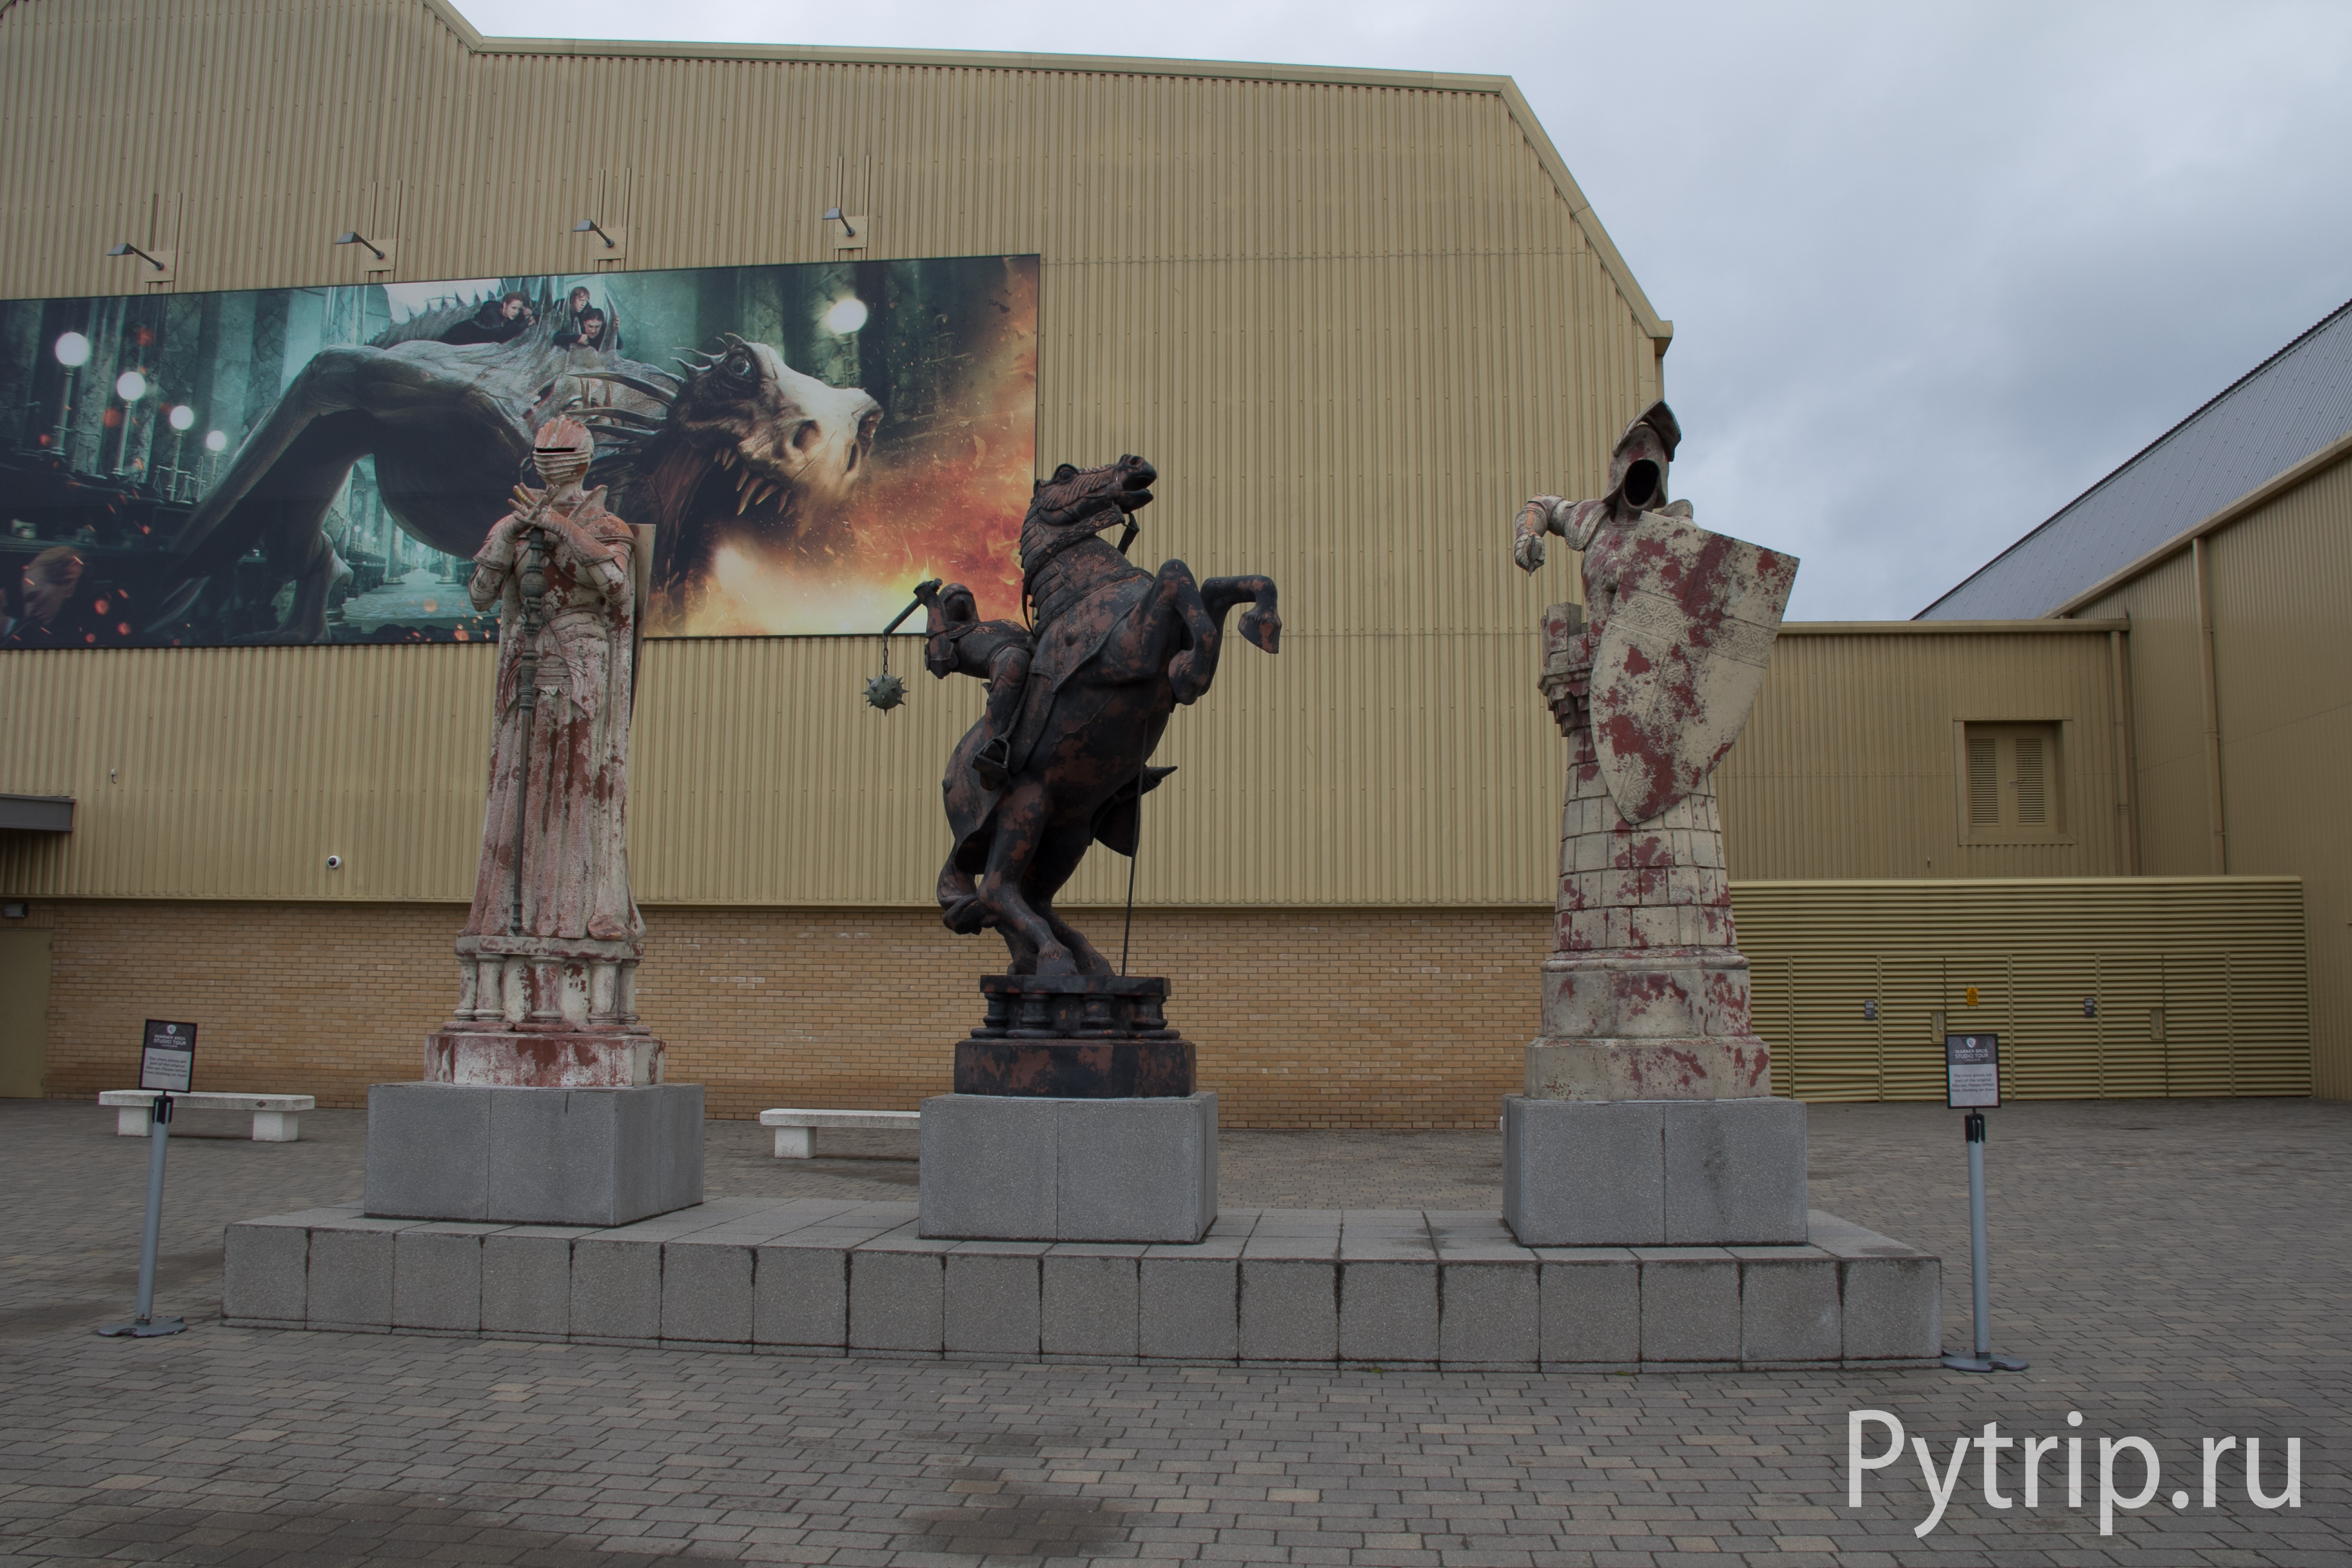 Warner Bros. Studio Tour